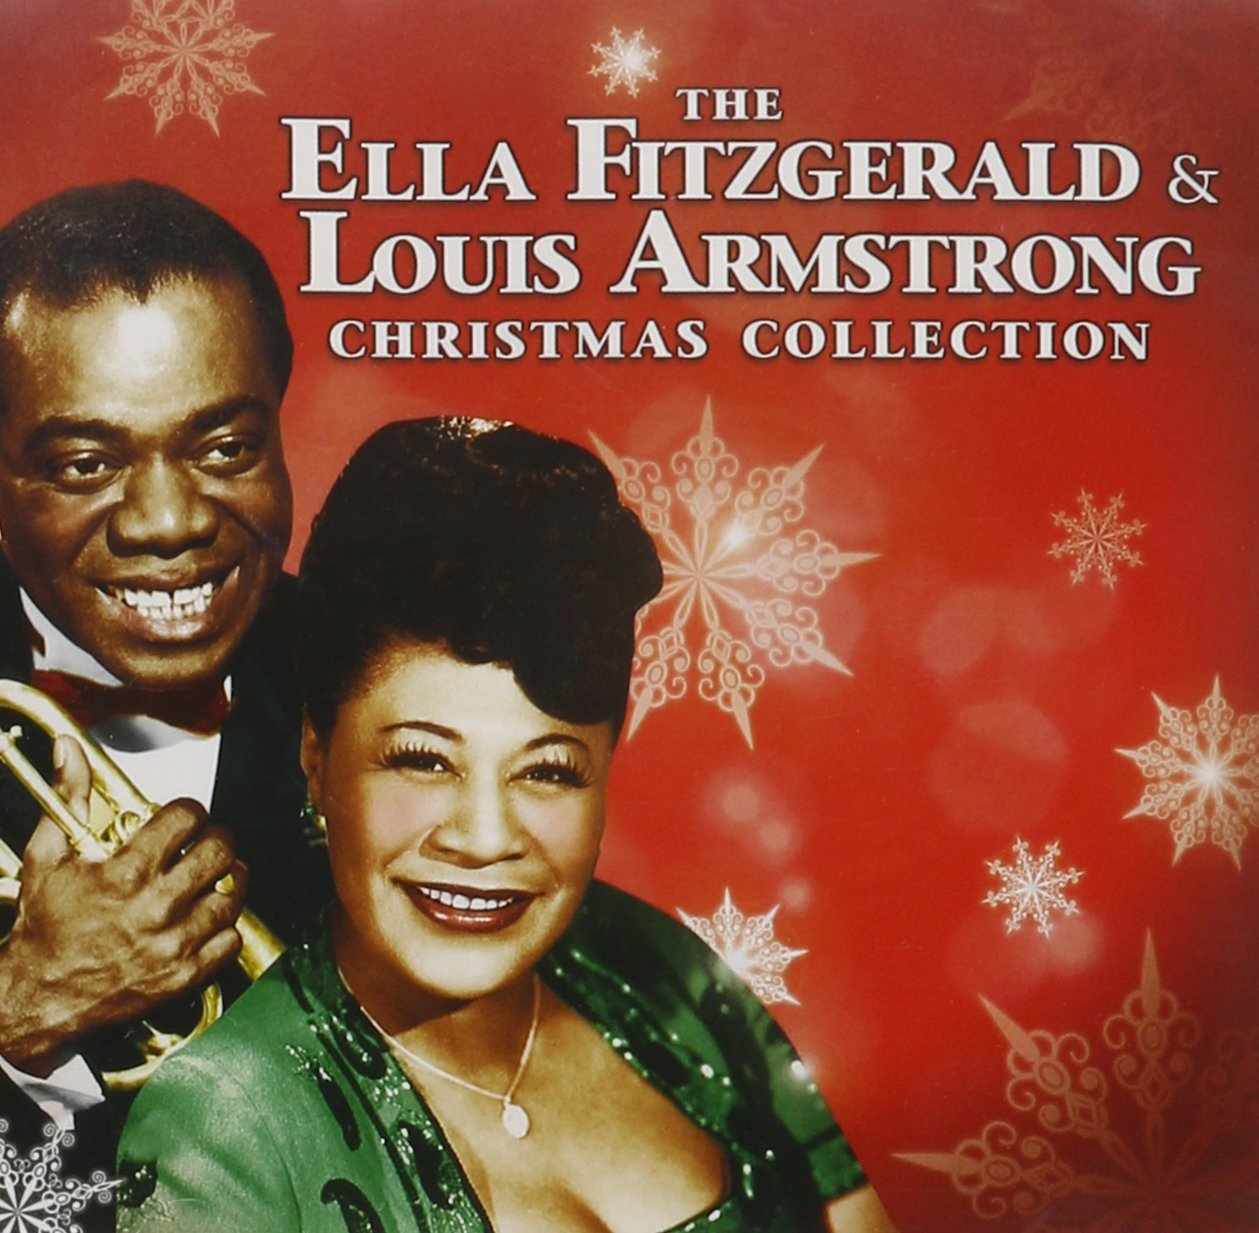 ella fitzgerald louis armstrong ella fitzgerald louis armstrong christmas coll amazoncom music - Fitzgerald Christmas